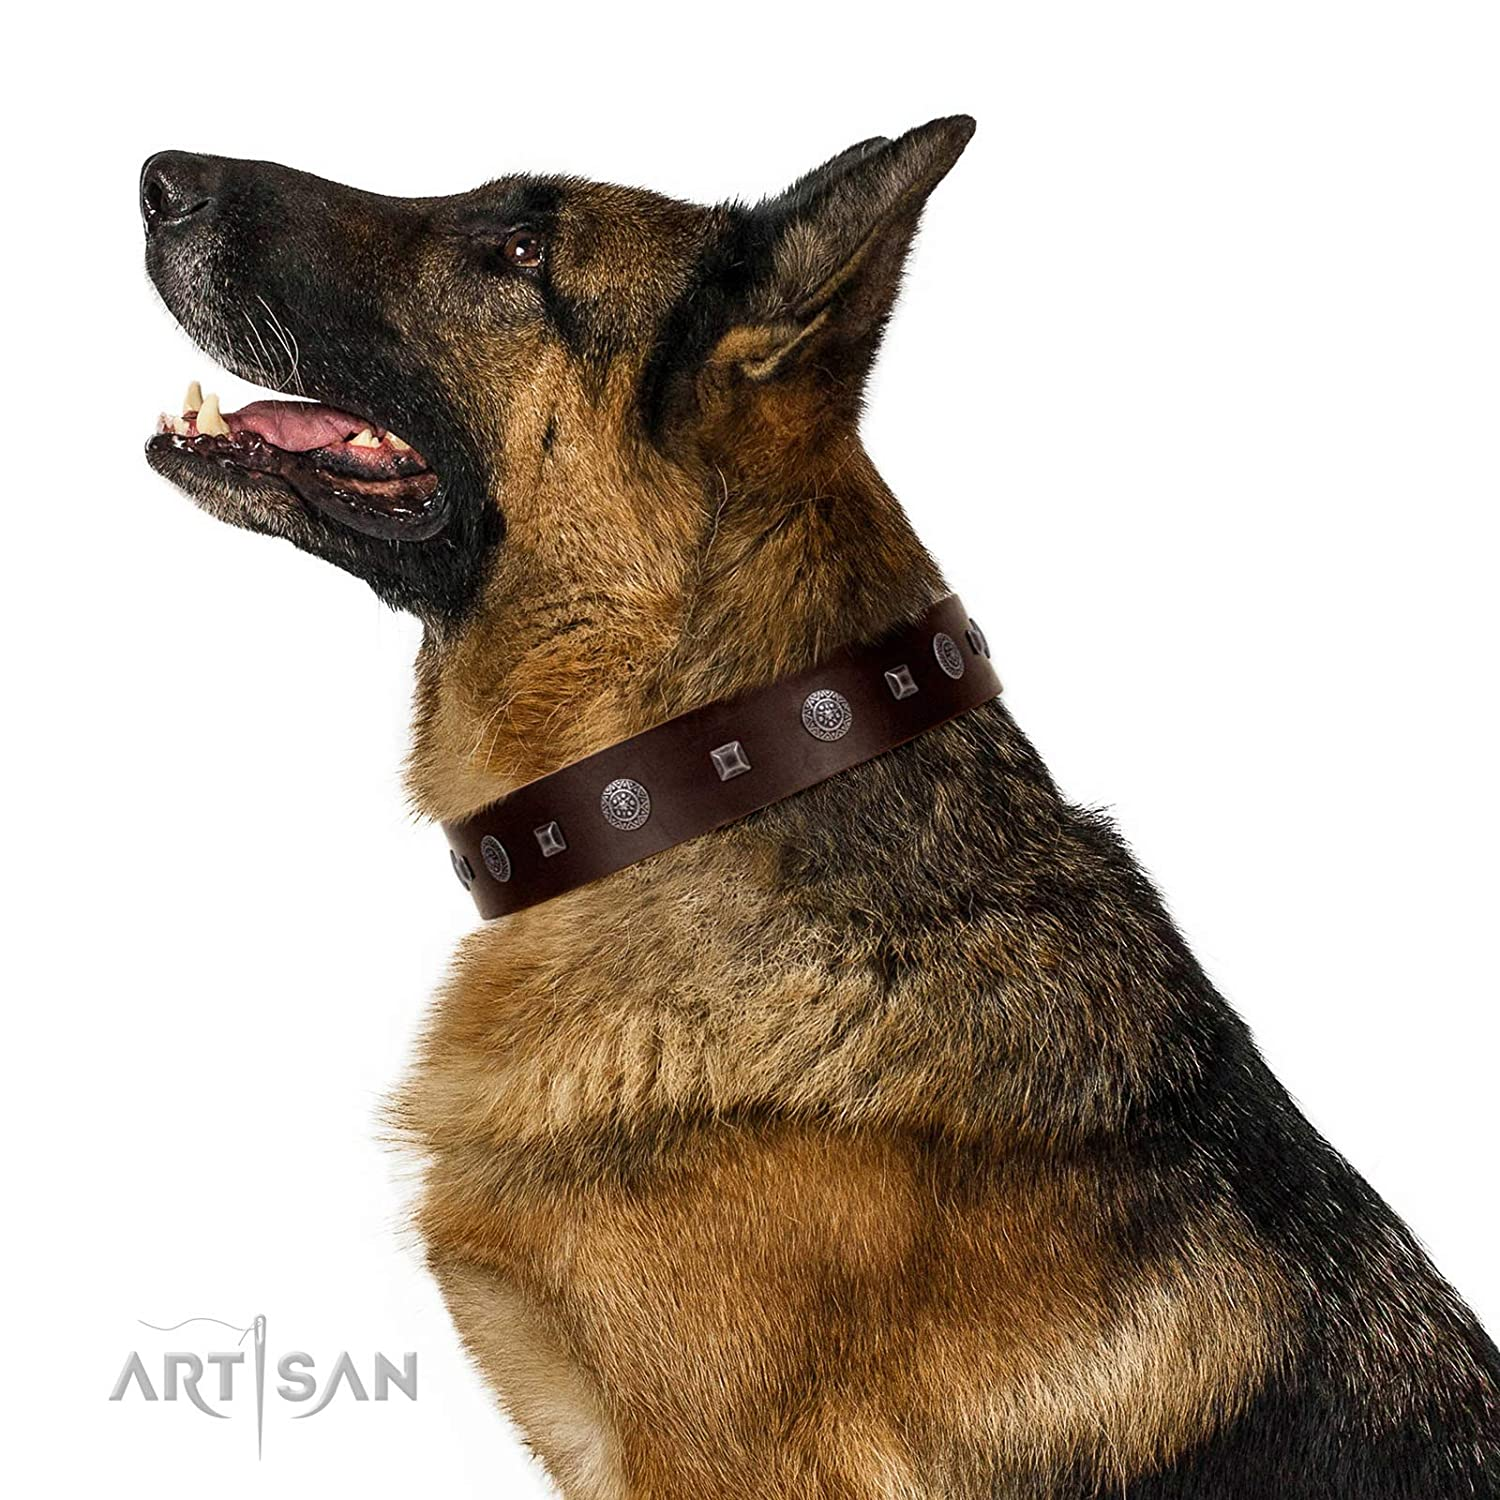 Fits for 23 inch (58cm) dog's neck size FDT Artisan 23 inch Brown Leather Dog Collar with Fancy Brooches and Studs Pure Sensation 1 1 2 inch (40 mm) Wide Gift Packaging Included